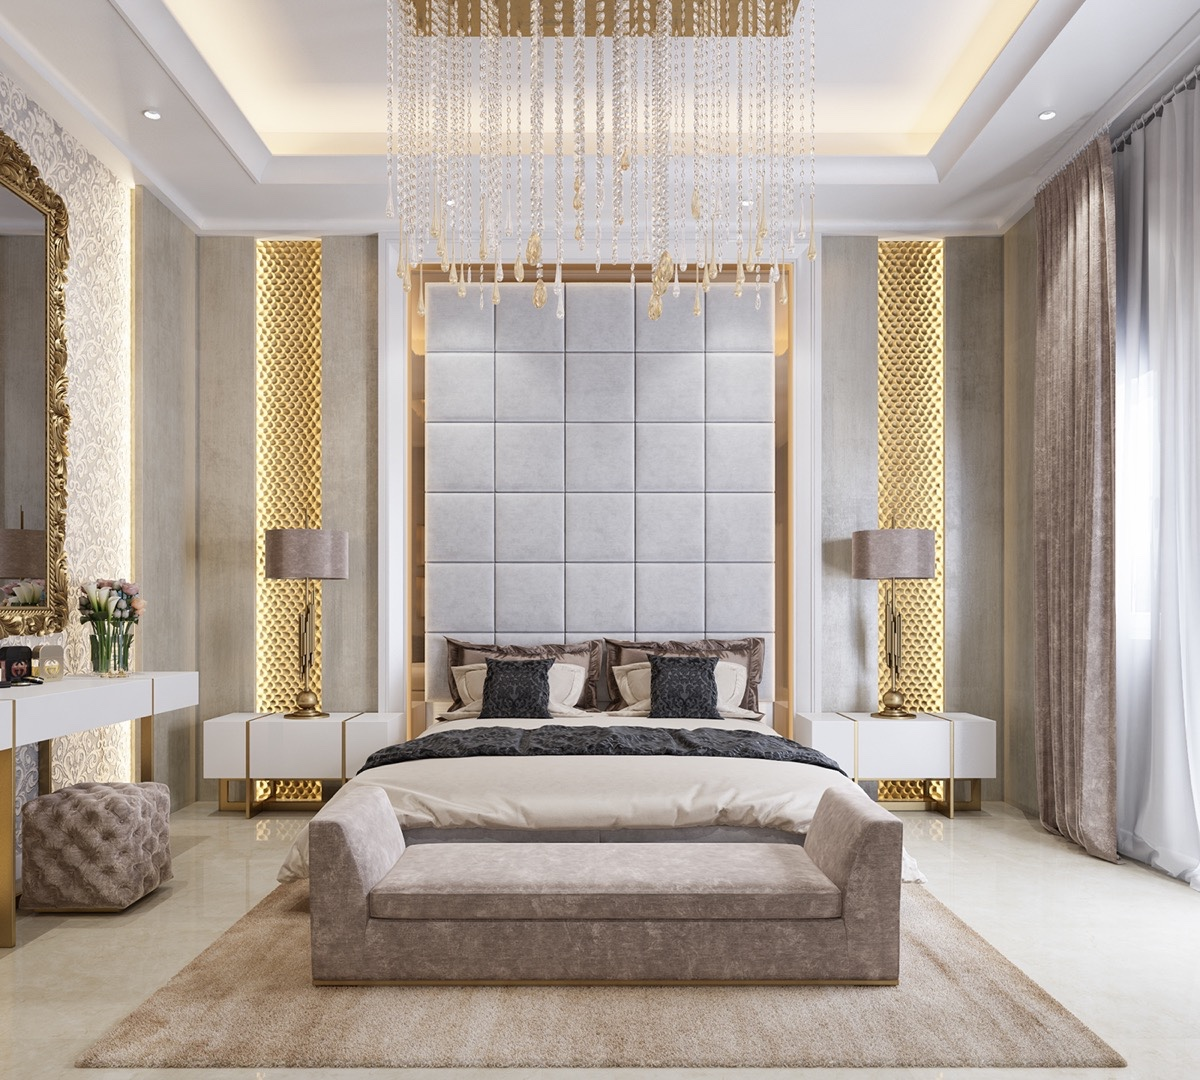 3 kind of elegant bedroom design ideas includes a for Deco chambre parentale 2016